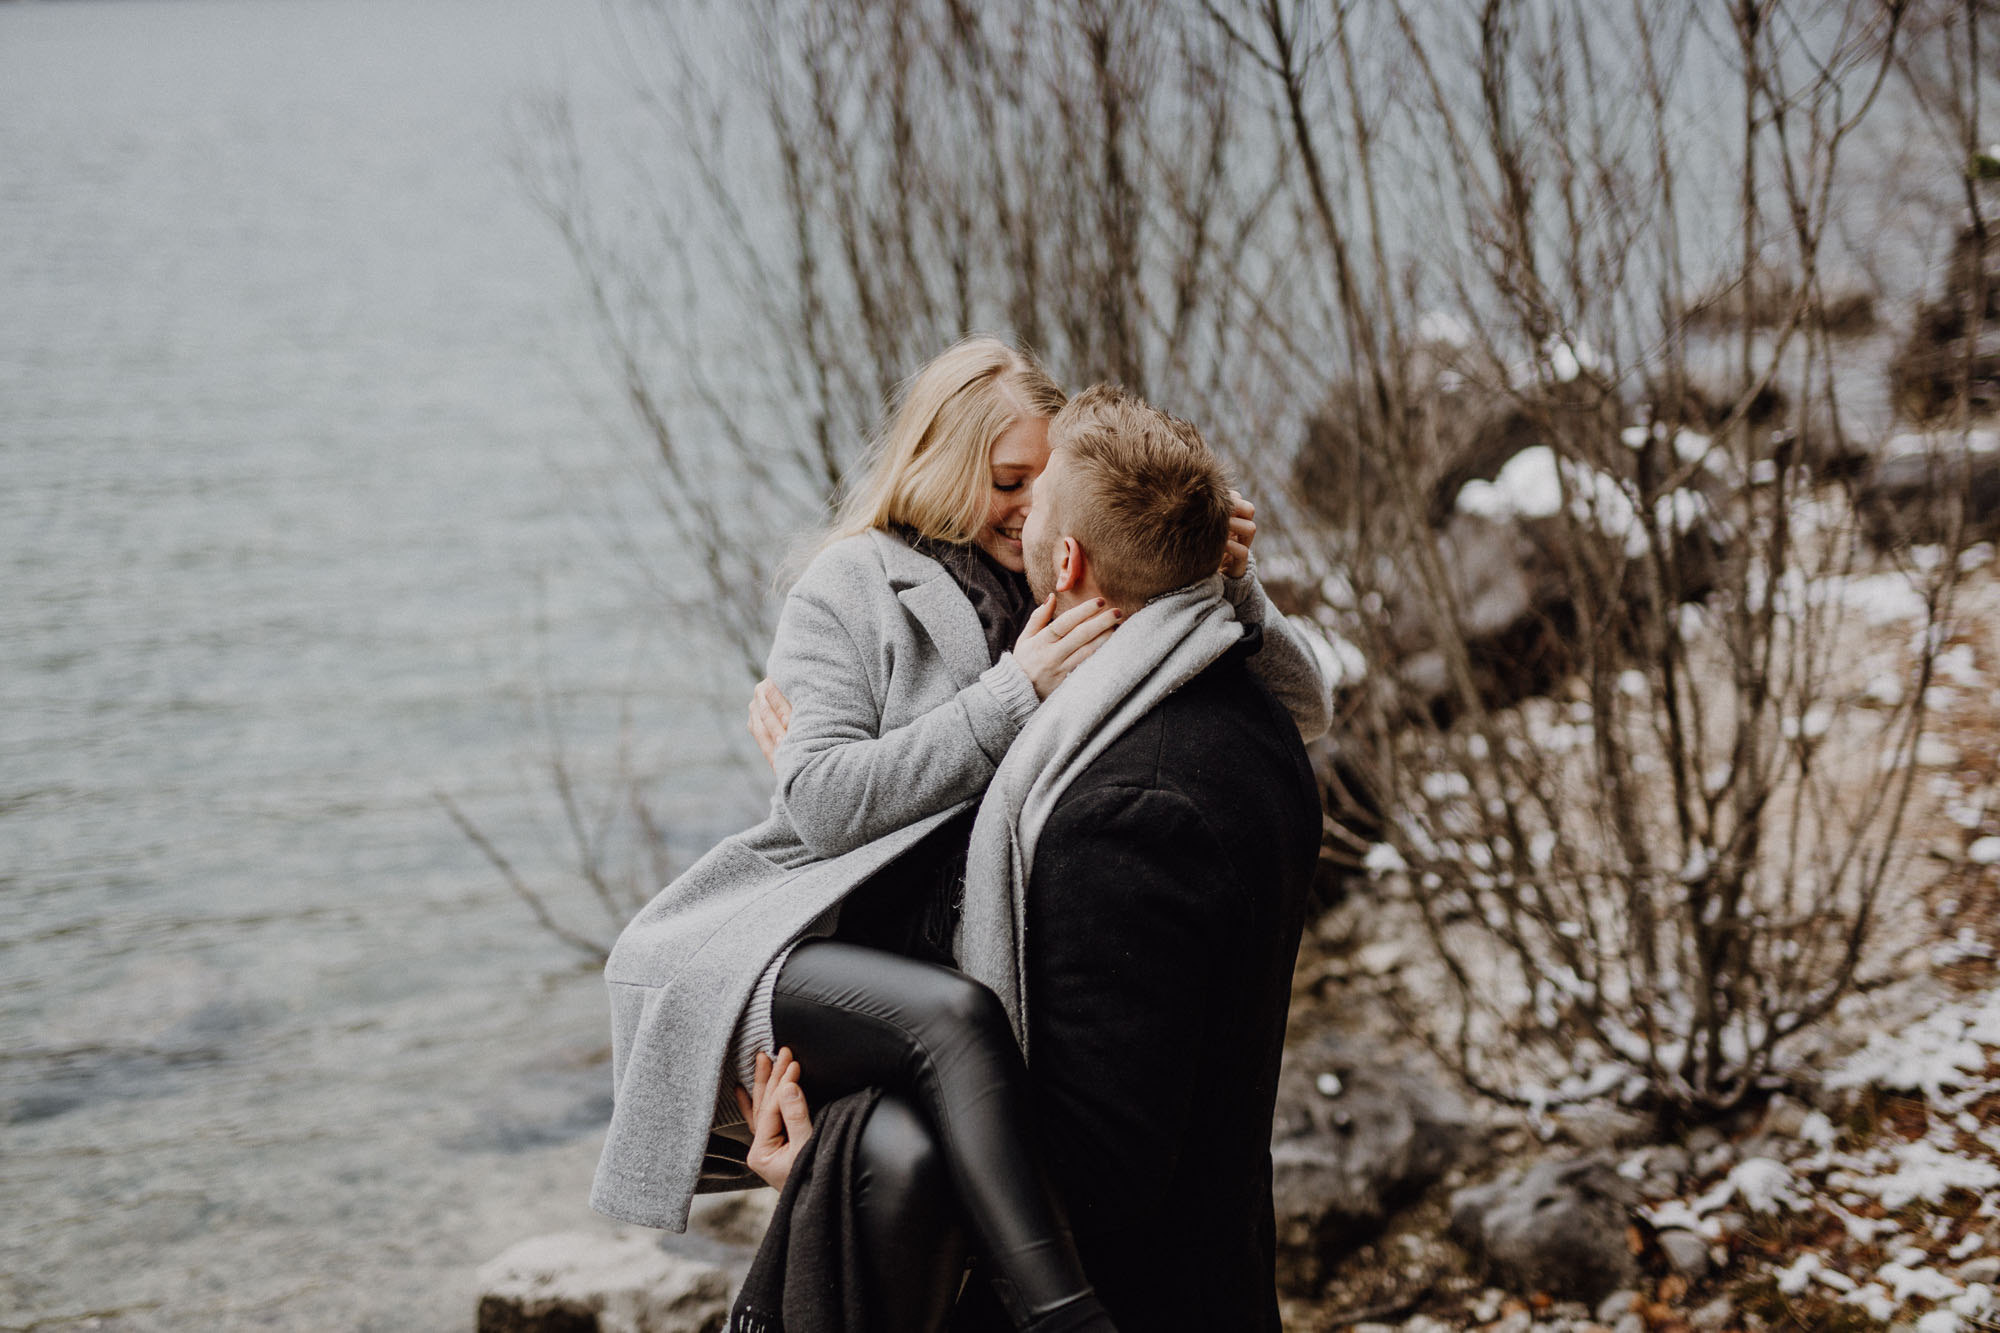 raissa simon photography destination couple munich eibsee 043 - Laura + Dominik